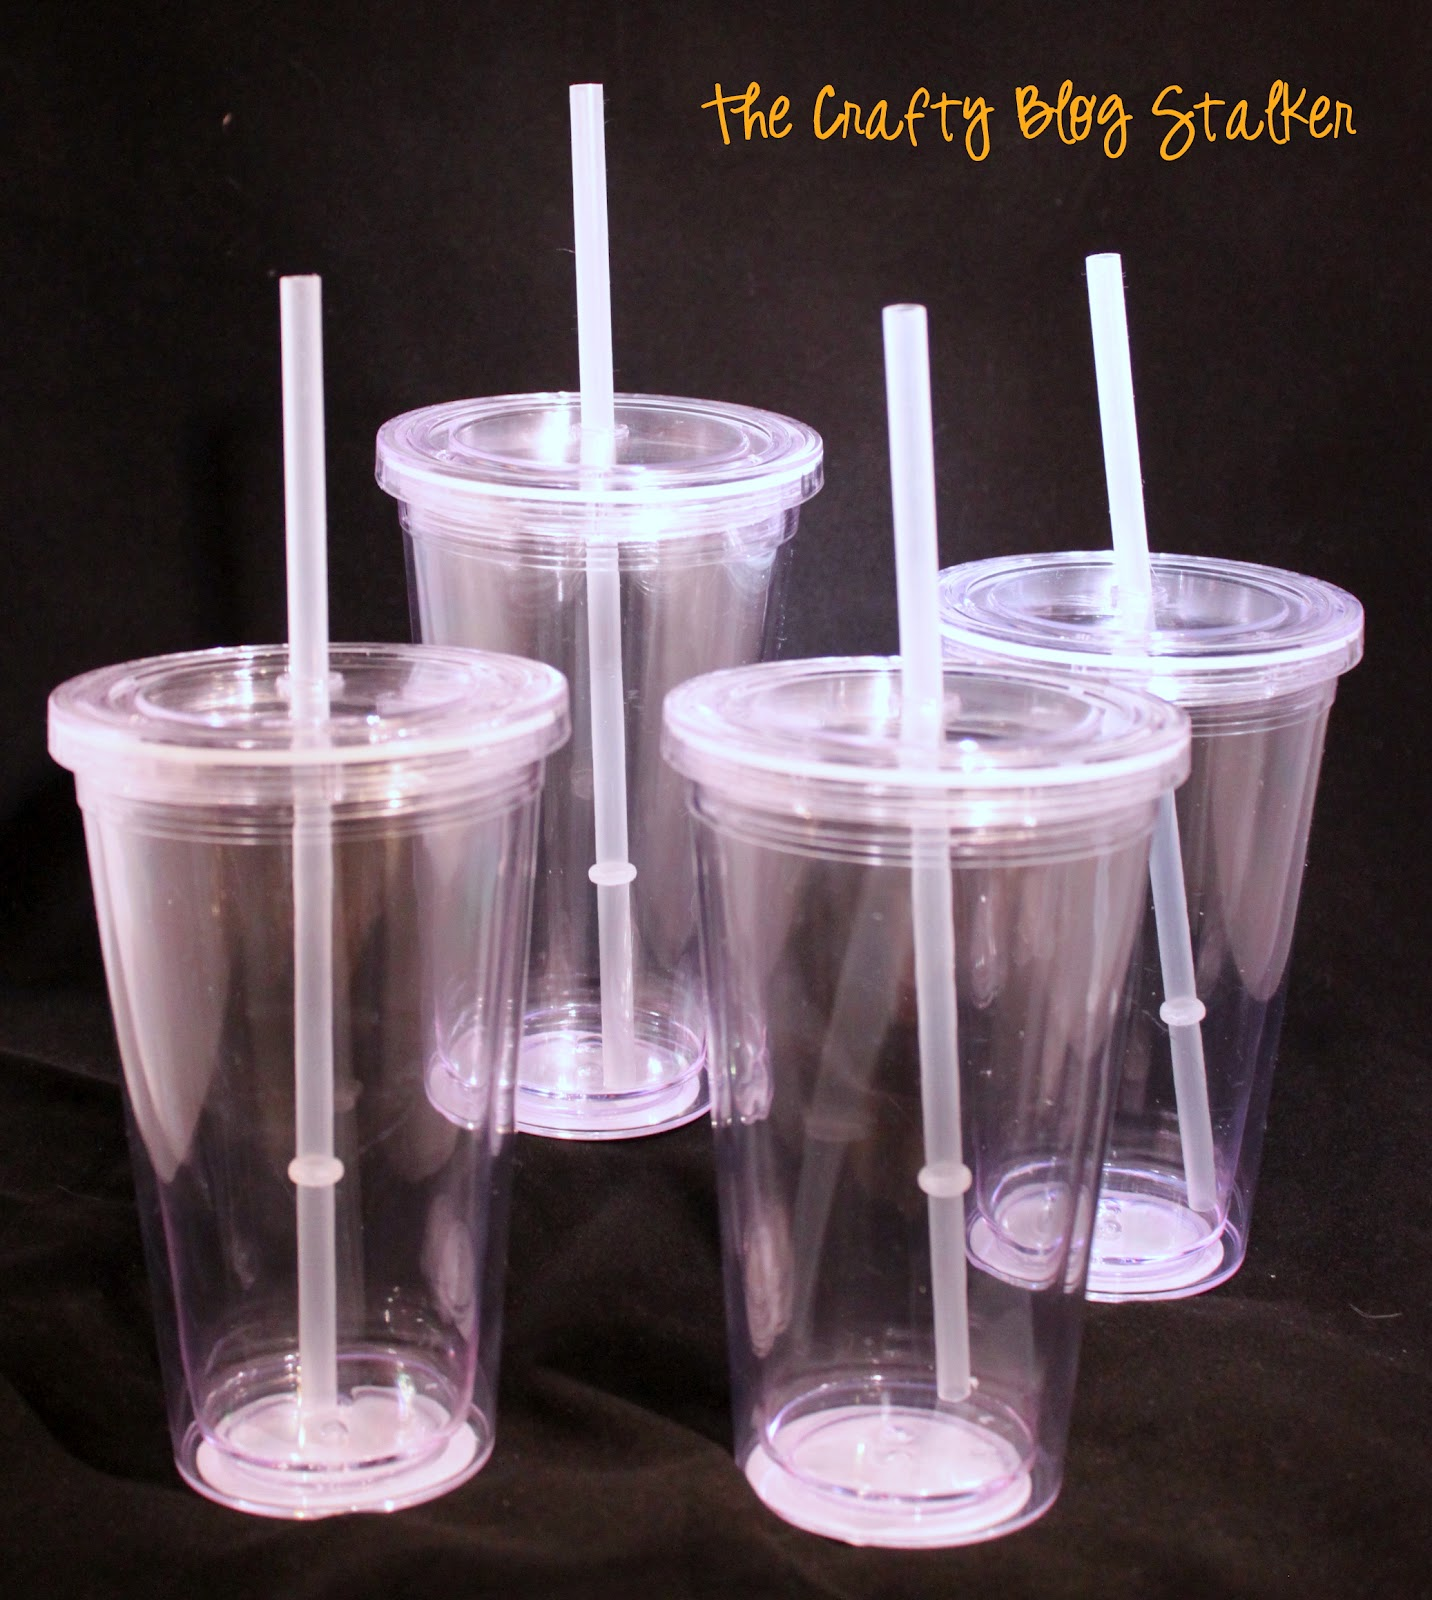 New Teacher Gift Straw Cup - The Crafty Blog Stalker